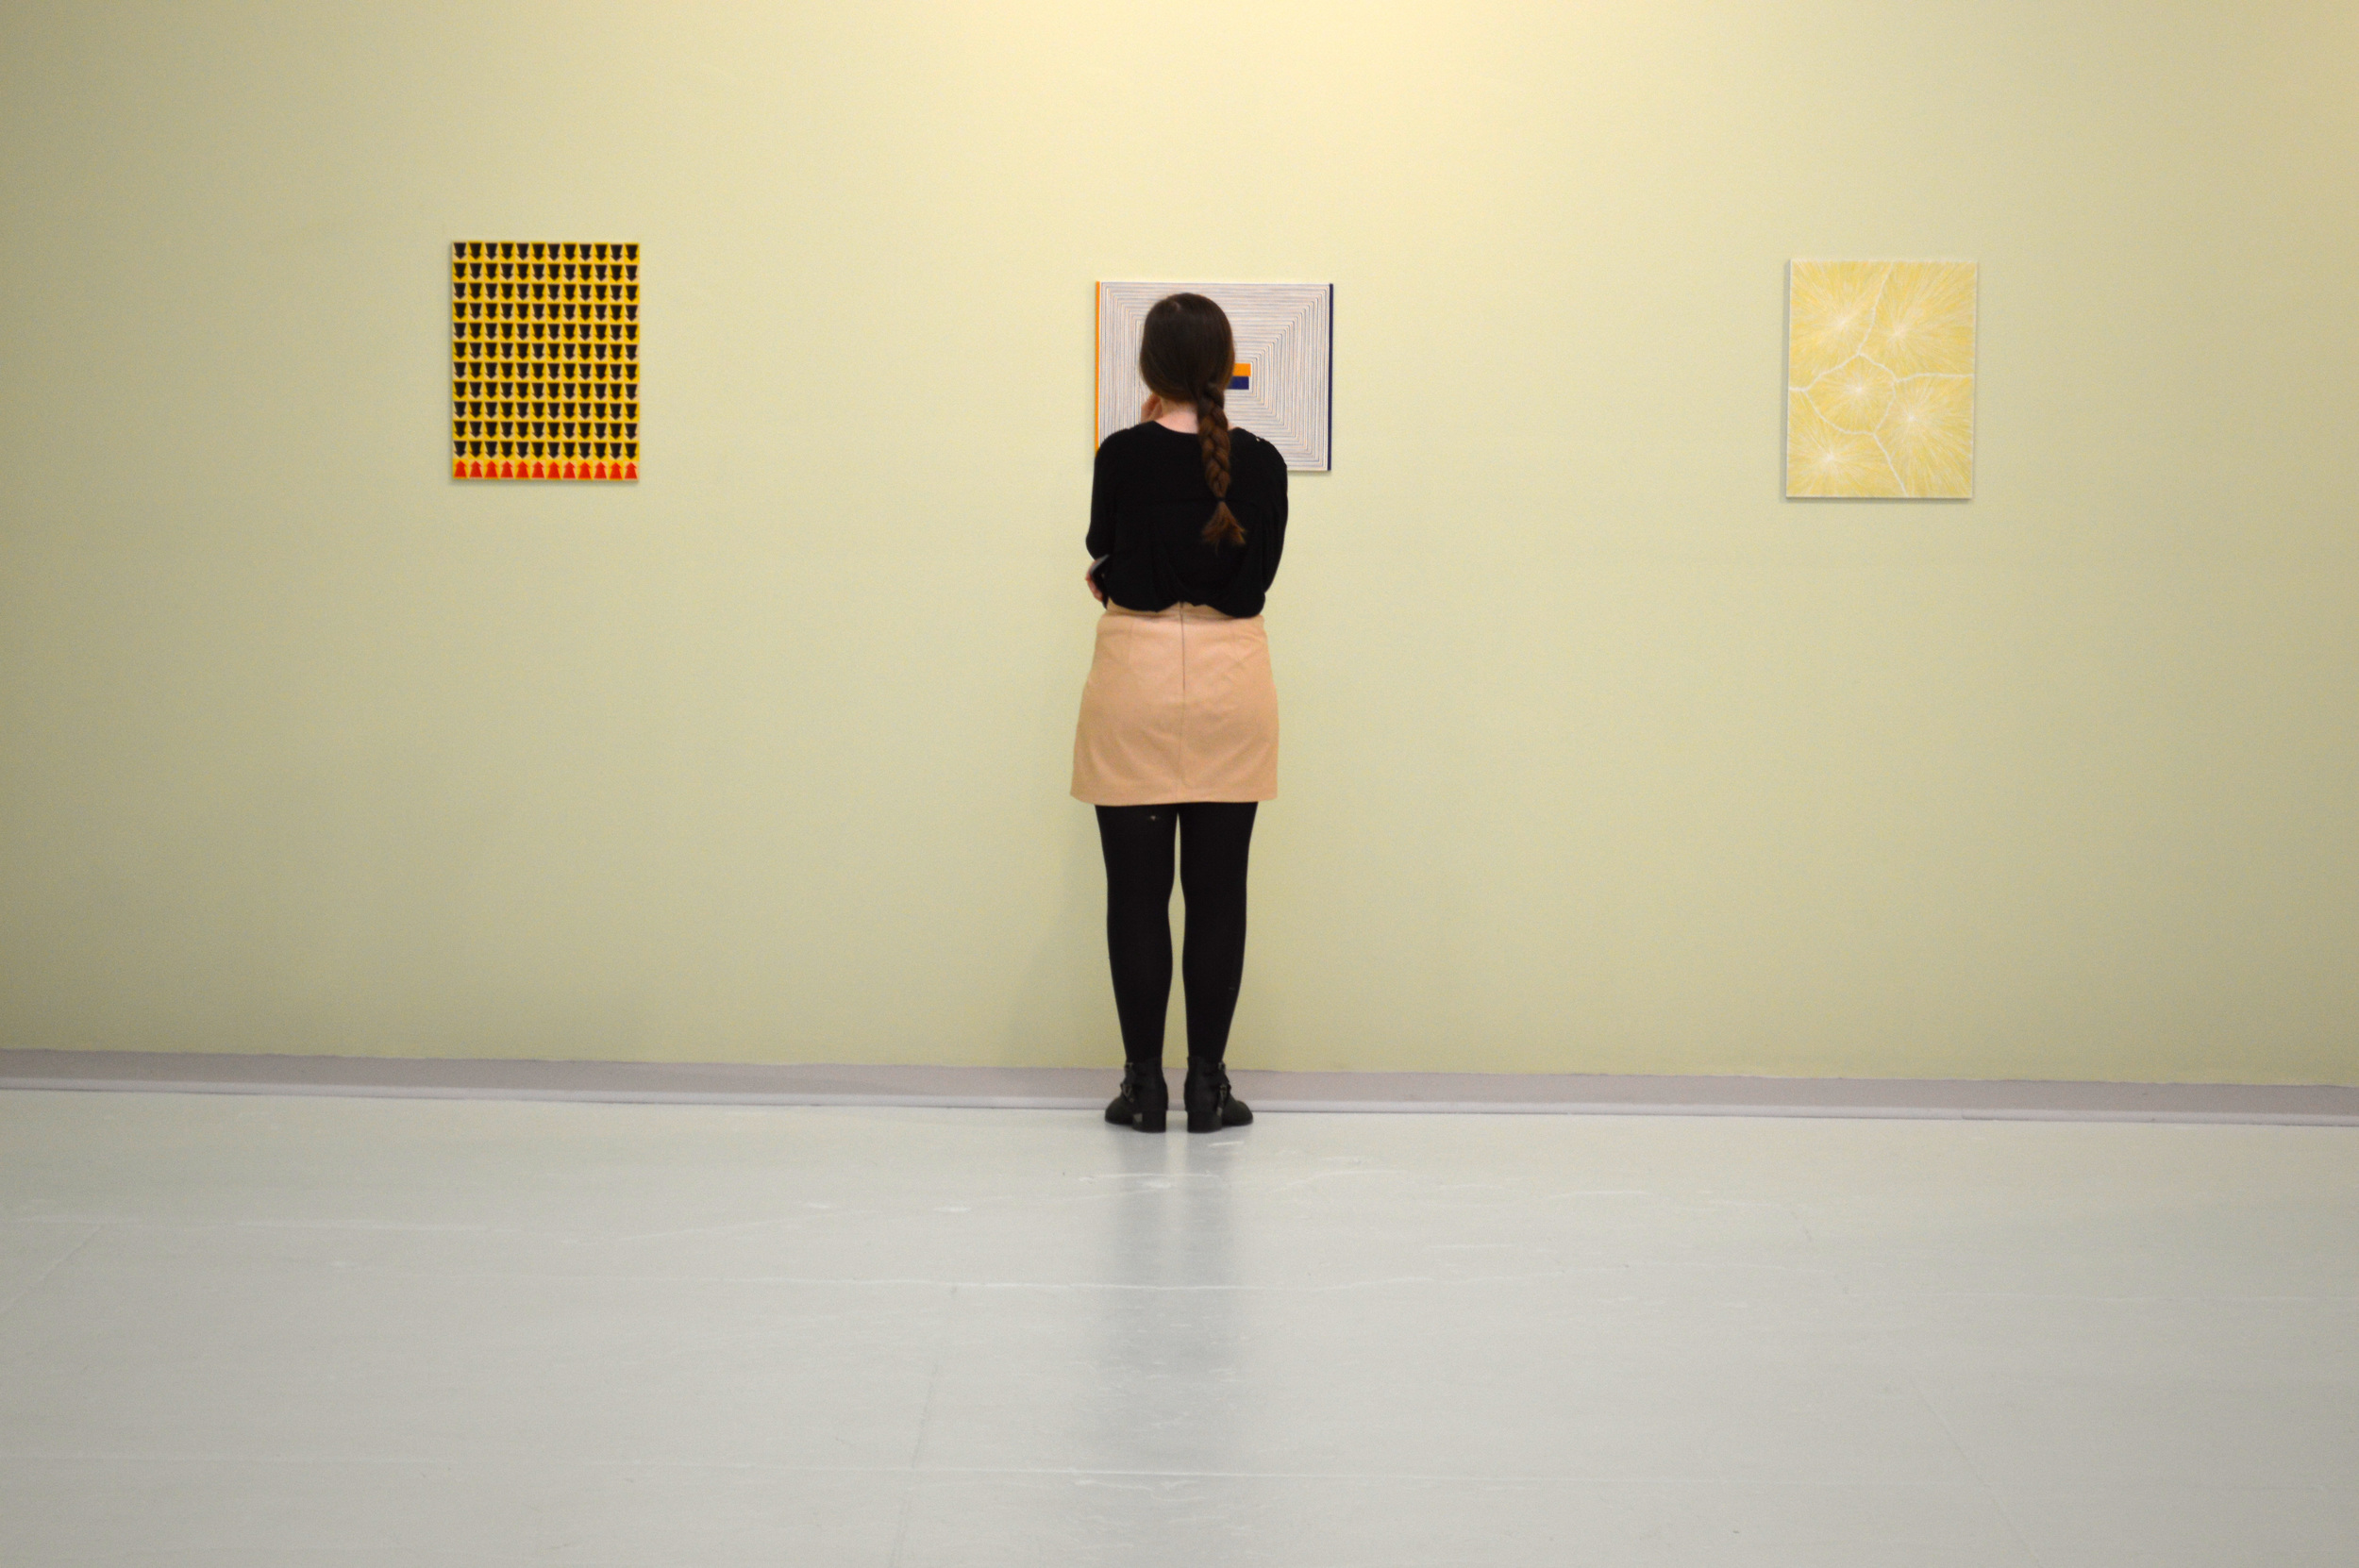 Installation of works by James Siena, from Intimacy in Discourse: Reasonable Sized Paintings